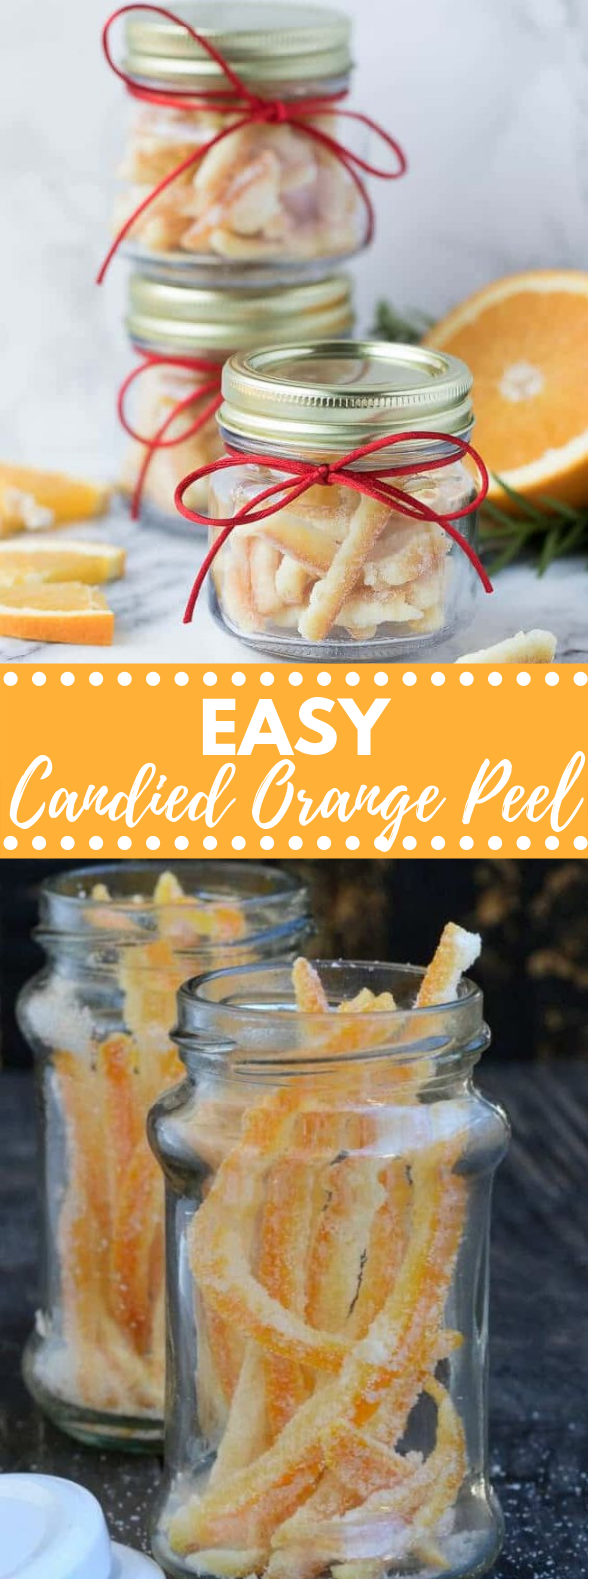 EASY CANDIED ORANGE PEEL RECIPE #dessert #holidayfood